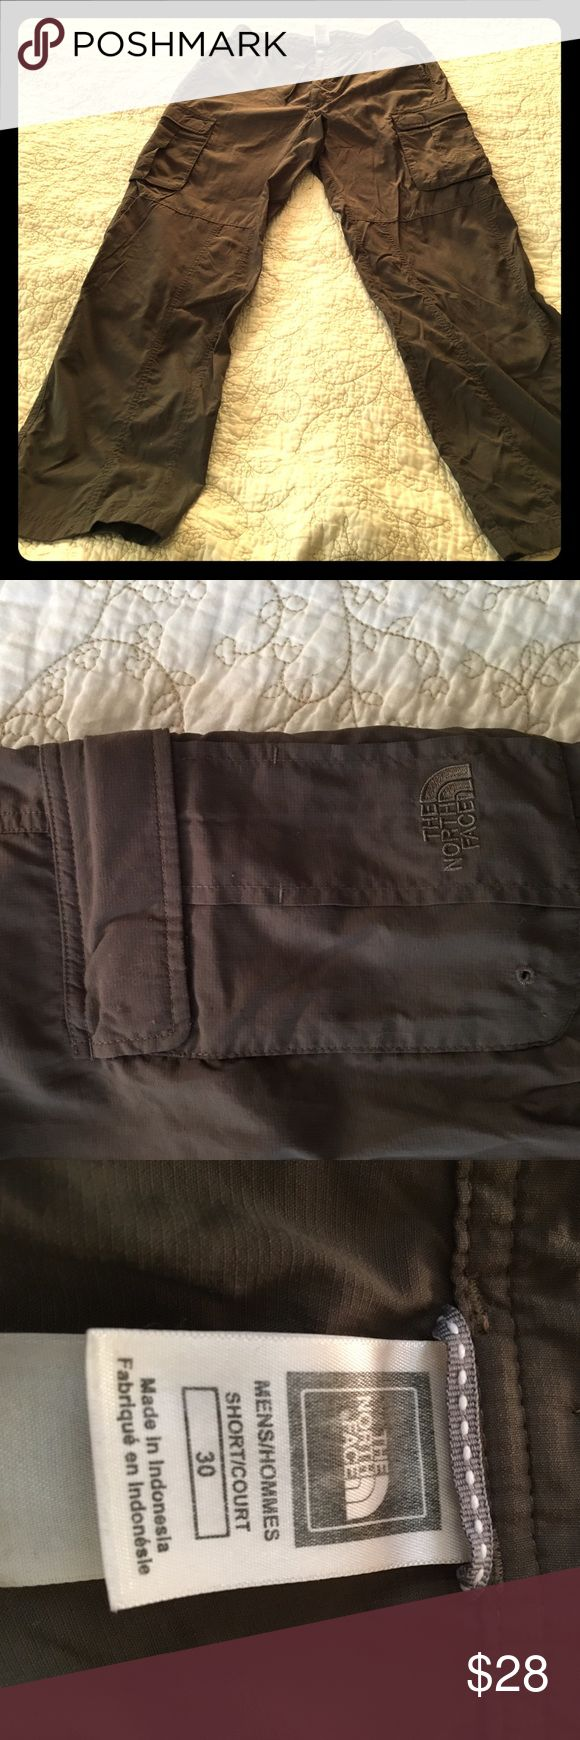 Northface pants men The Northface Cargo pants for men, inseam 29 inches, 2 back pockets, 2 leg pockets, olive green The North Face Pants Cargo